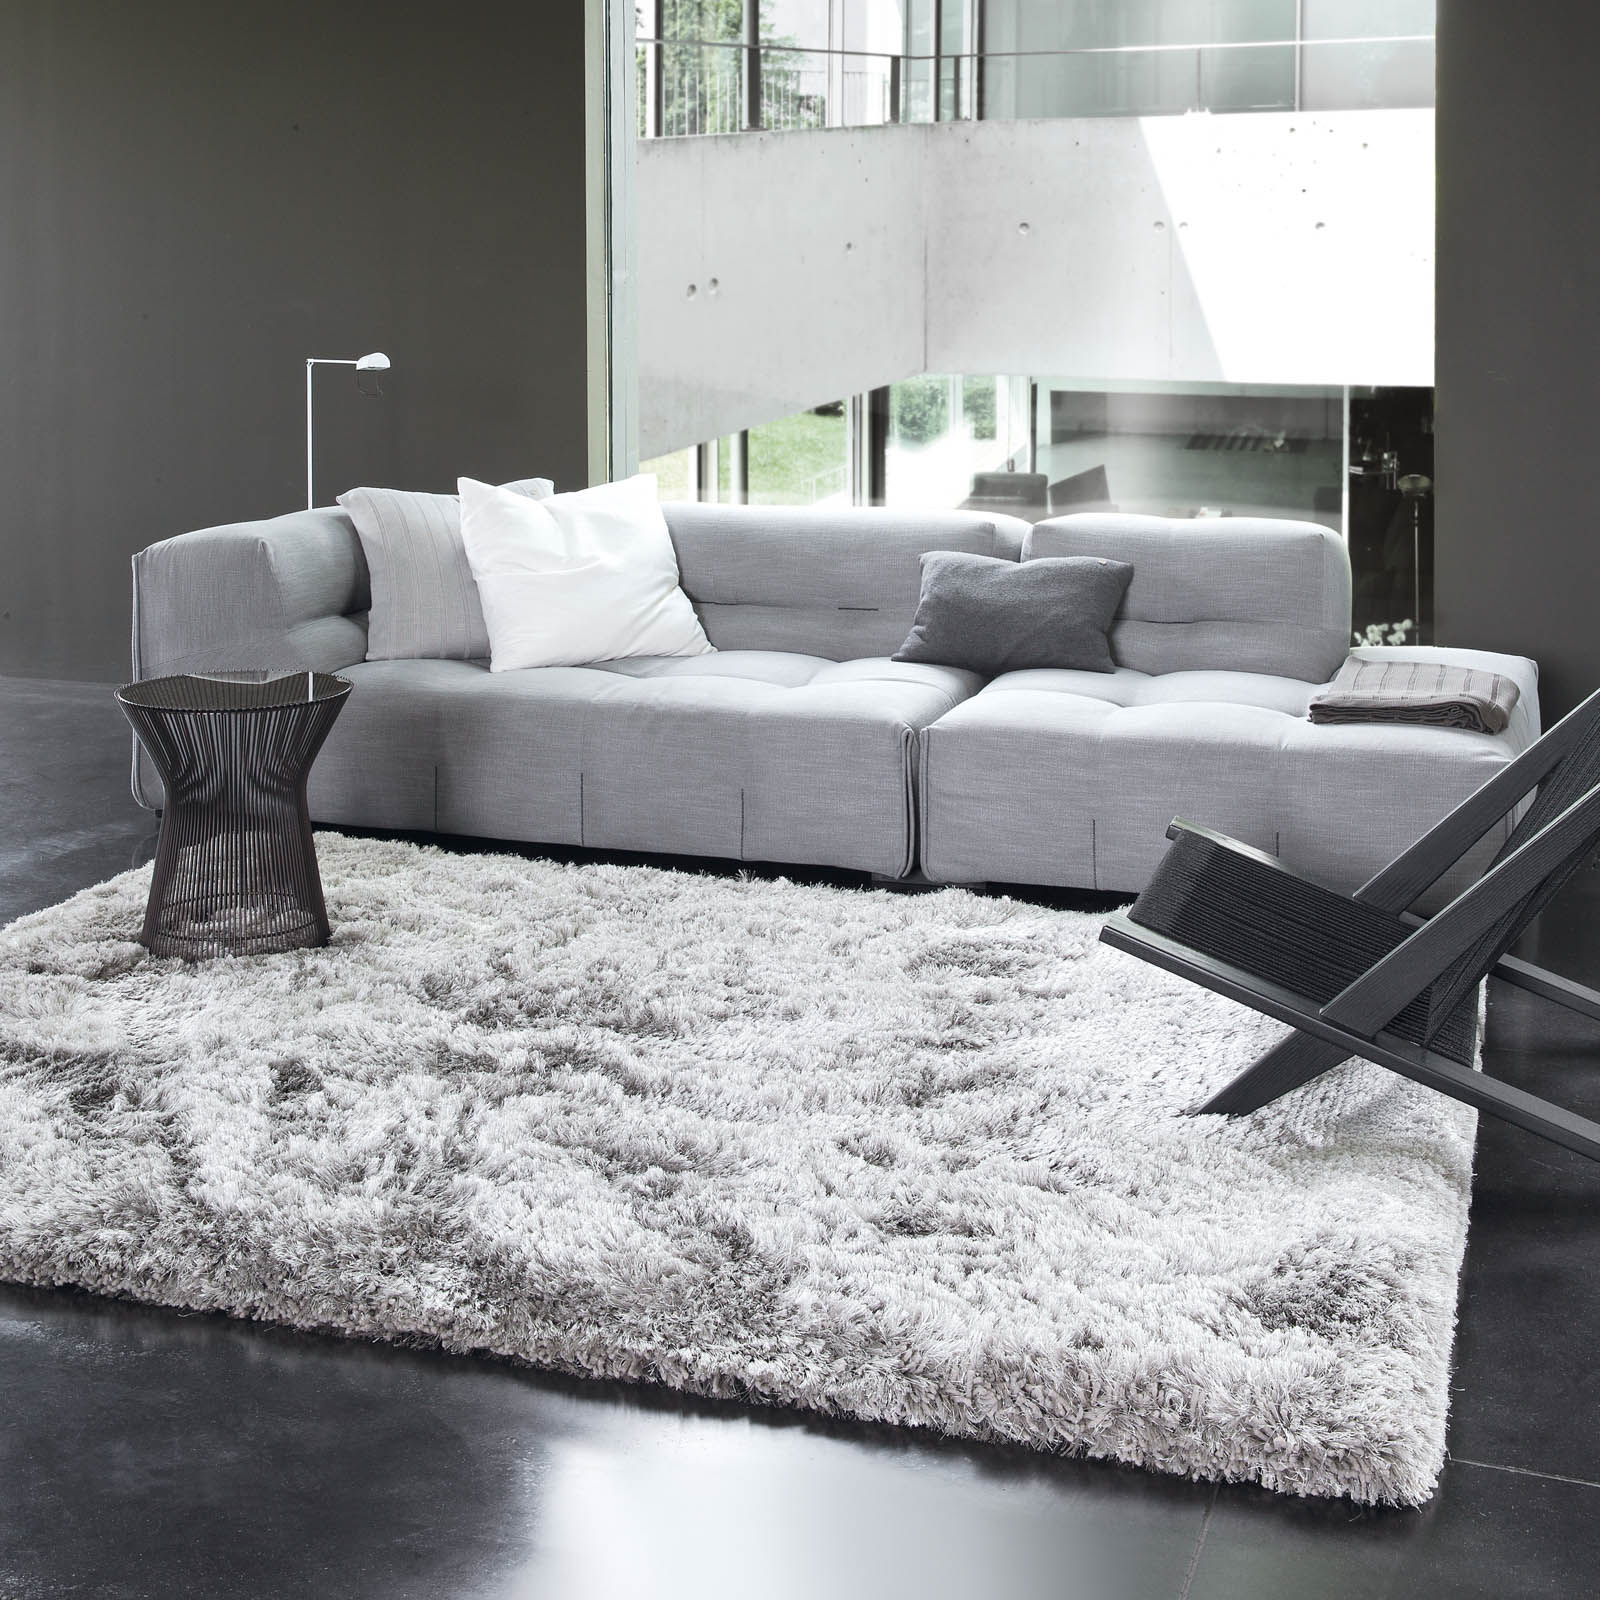 Uni Adore Shaggy Rugs 207 001 920 in Silver by Ligne PurePure